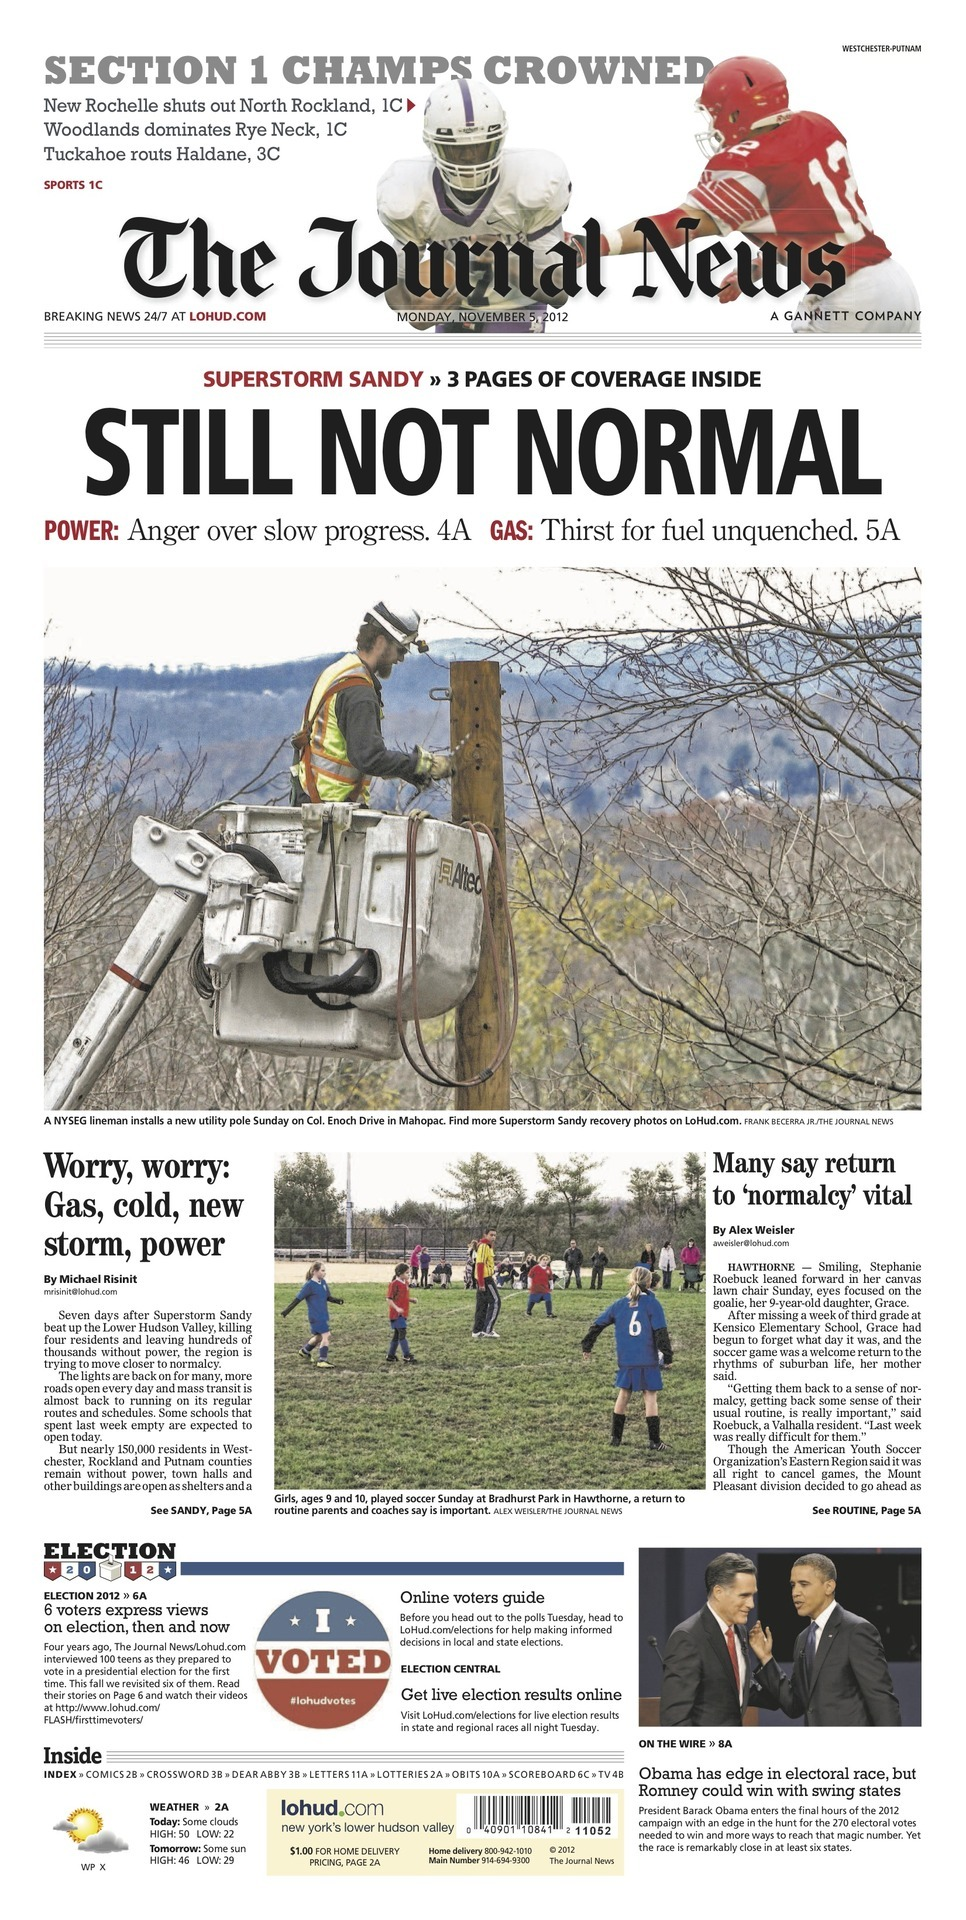 The Journal News Headlines from 11/05/12: Worry, worry: Gas, cold, new storm, power  Many say return to 'normalcy' vital  ELECTION 2012